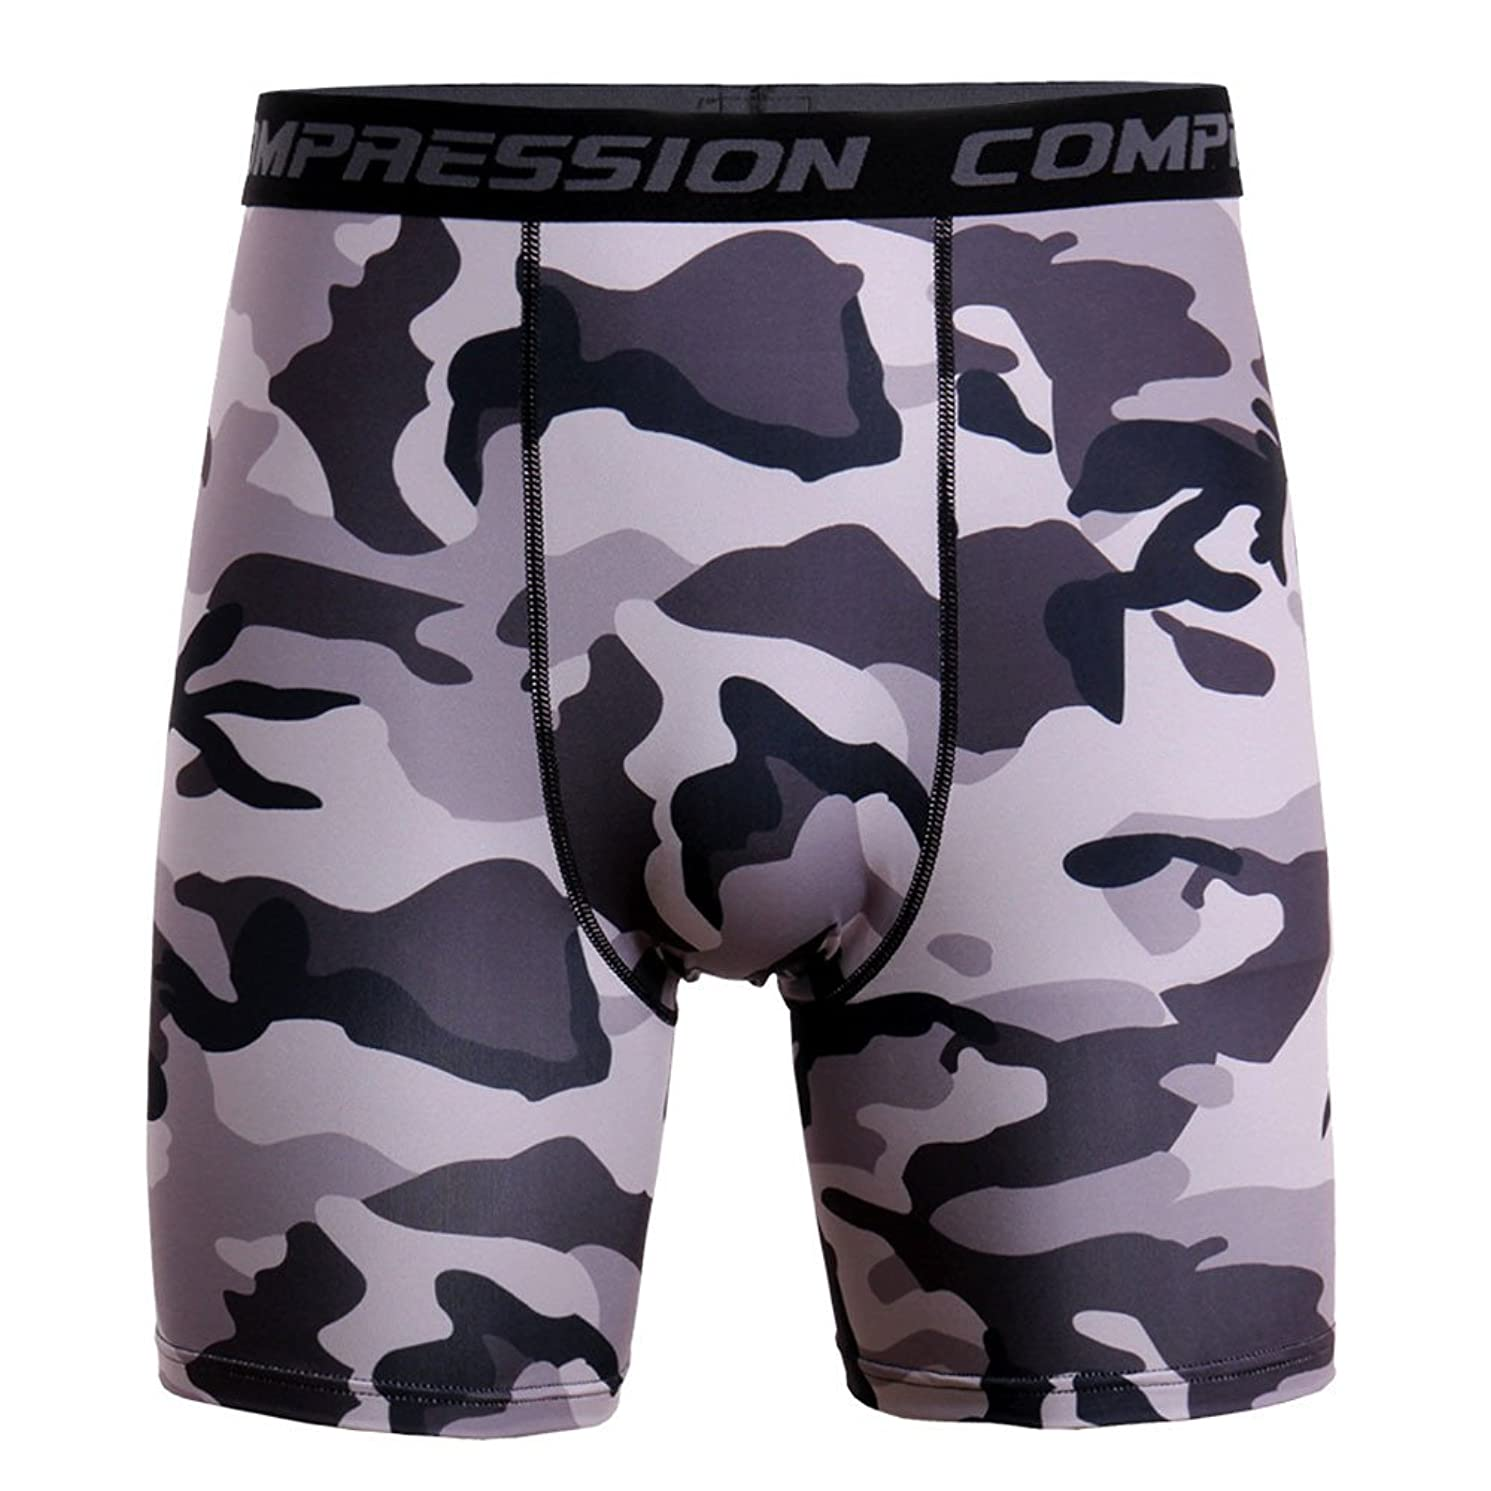 JJLIKER Men's Camouflage Compression Shorts Base Layer Athletic Underwear for Cycling Gym Workout Running Shorts